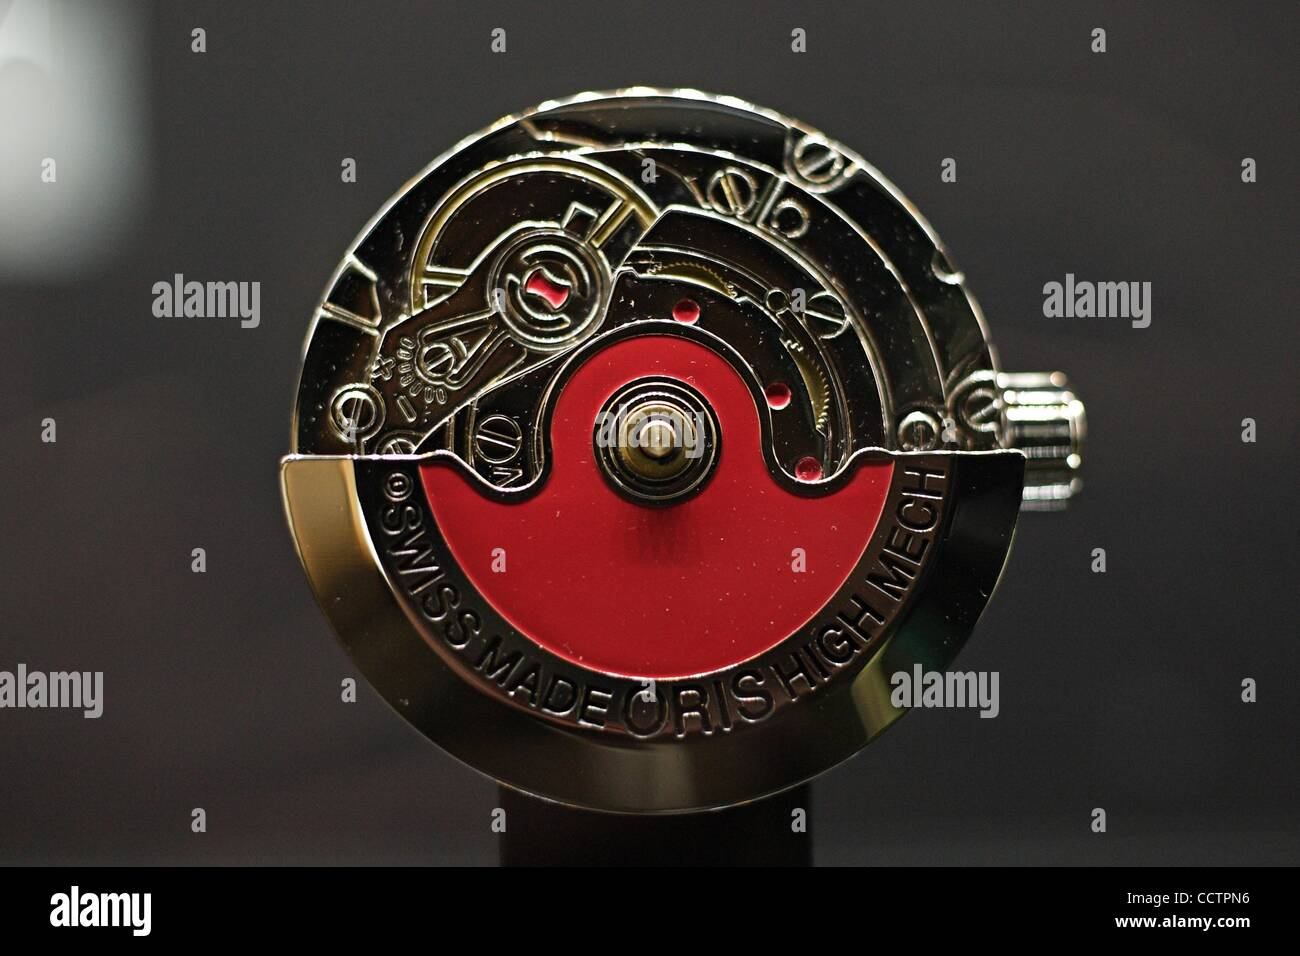 Mar 23, 2010 - Basel, Switzerland - ORIS watch mechanism is displayed at the exhibition stand of the Baselworld Stock Photo